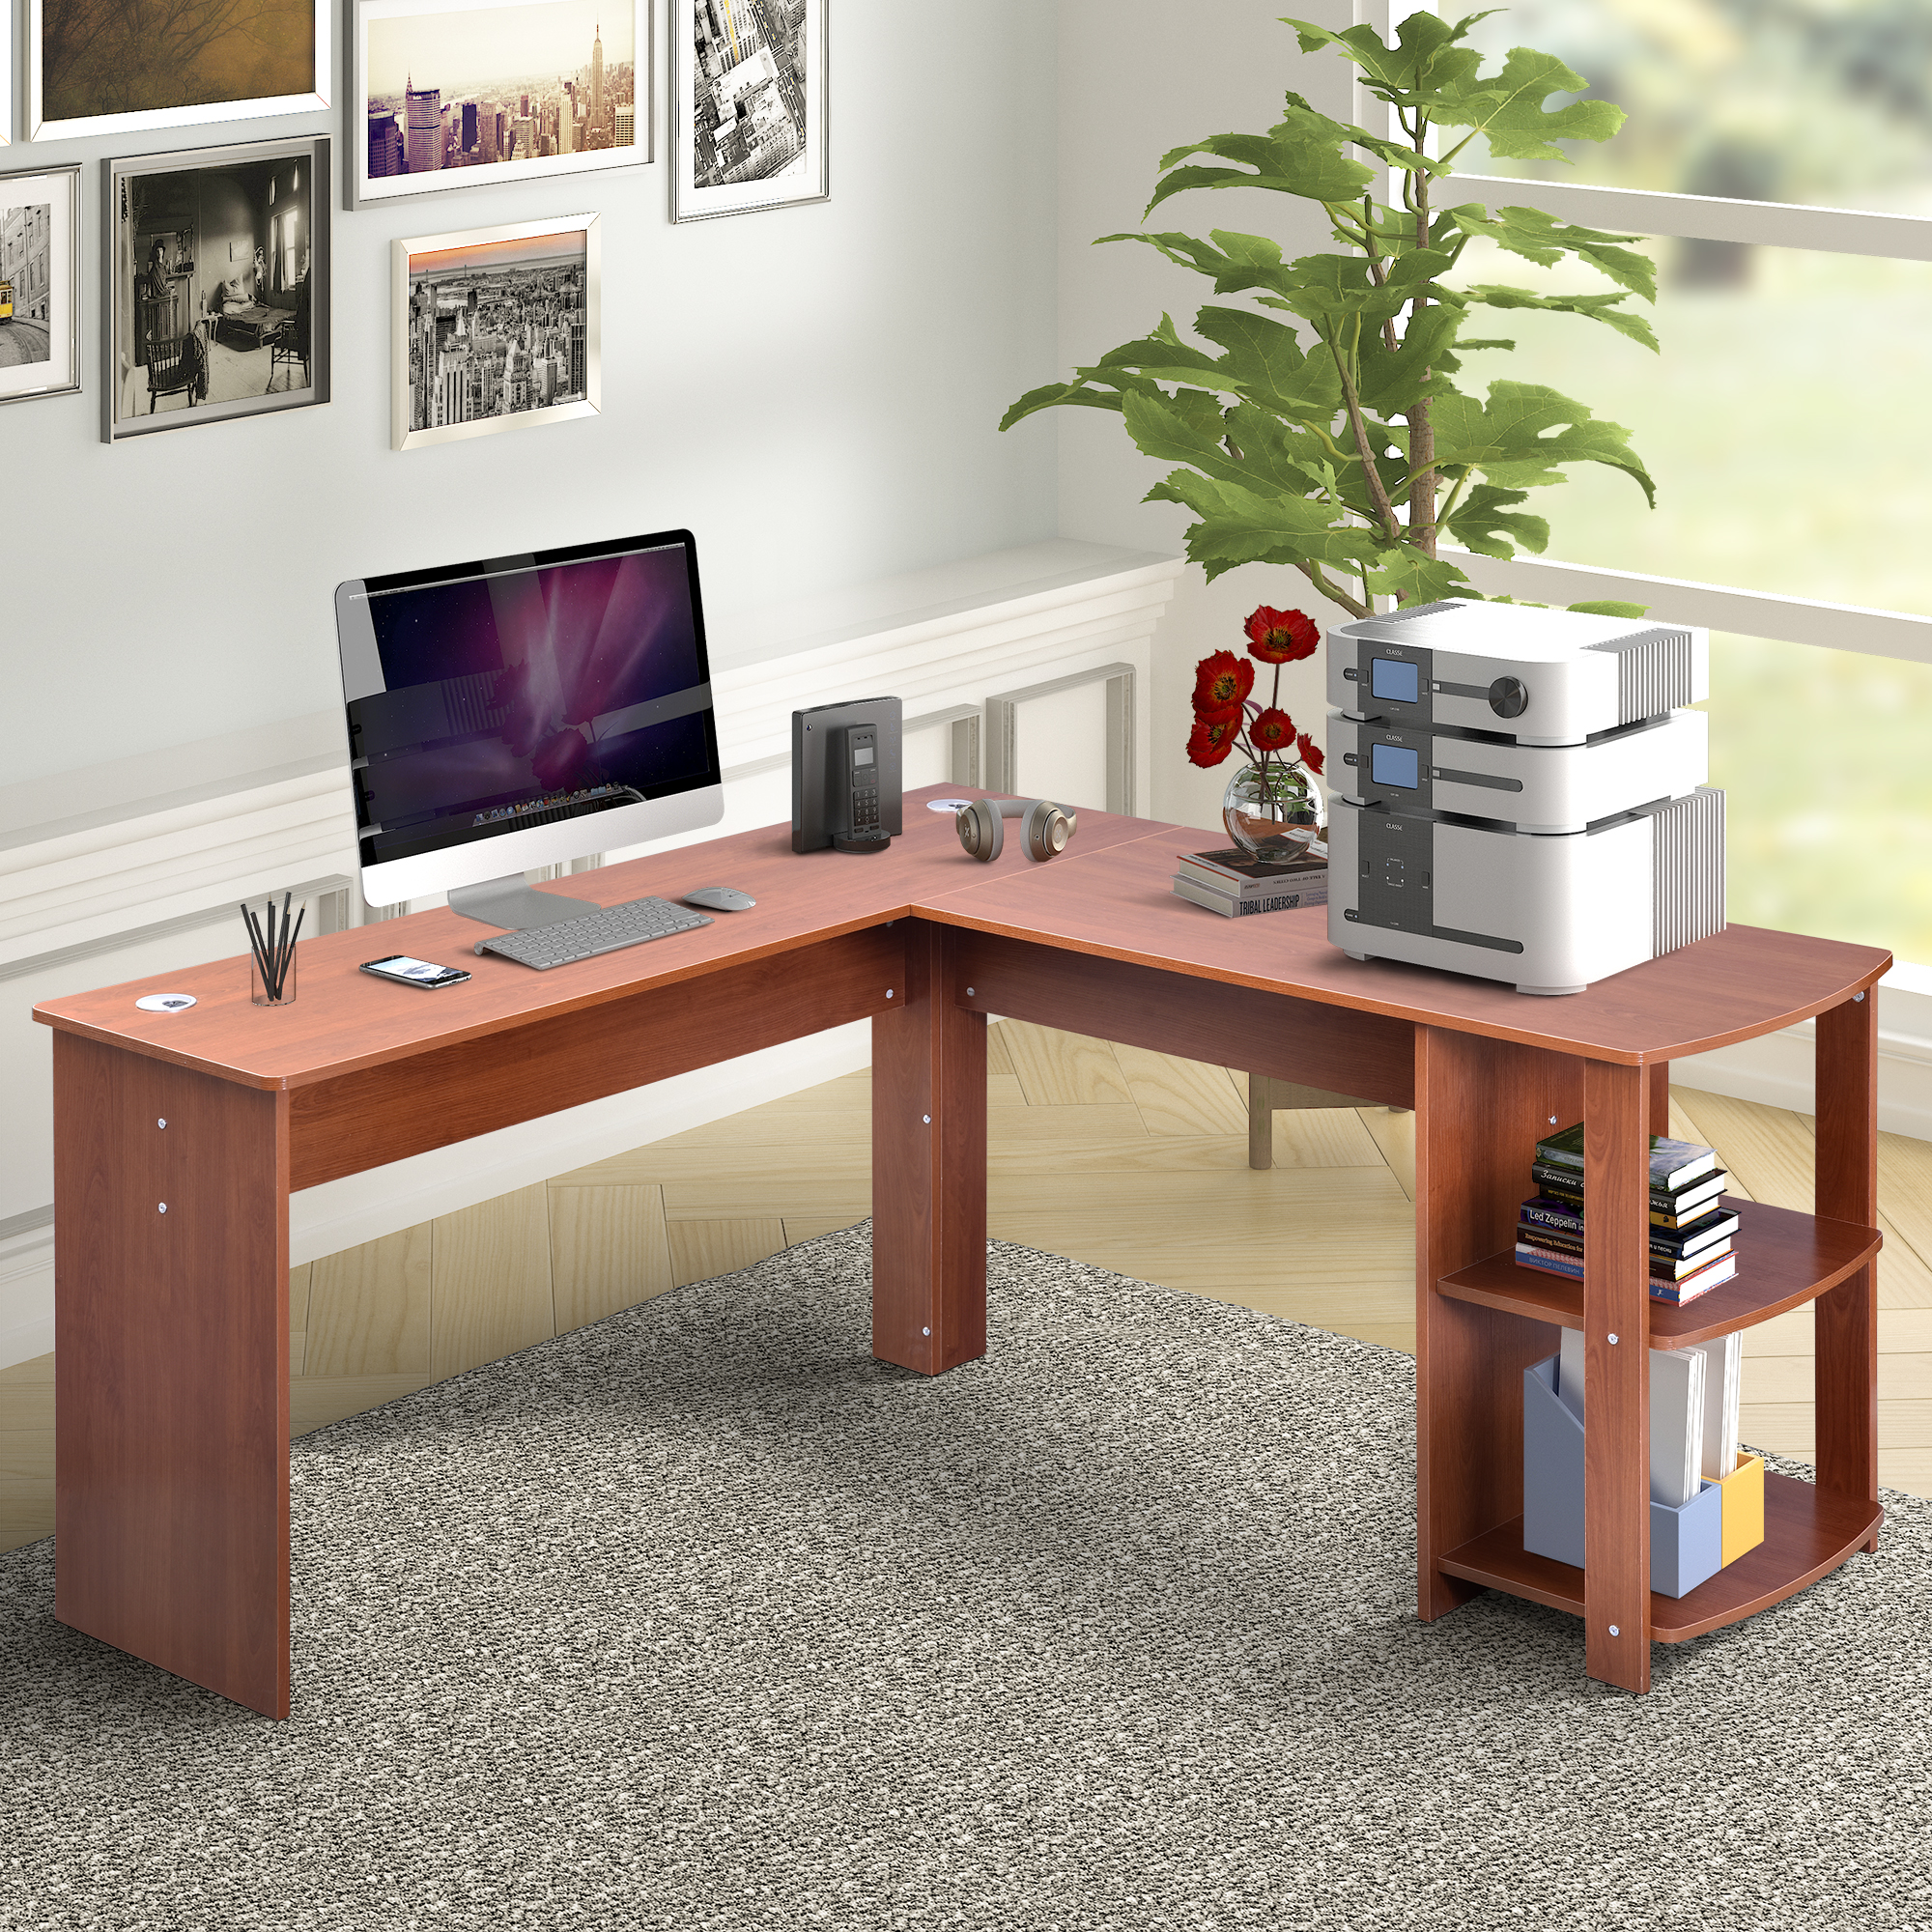 Merveilleux Harperu0026Bright Designs L Shaped Computer Desk With Side Storage,Light Brown